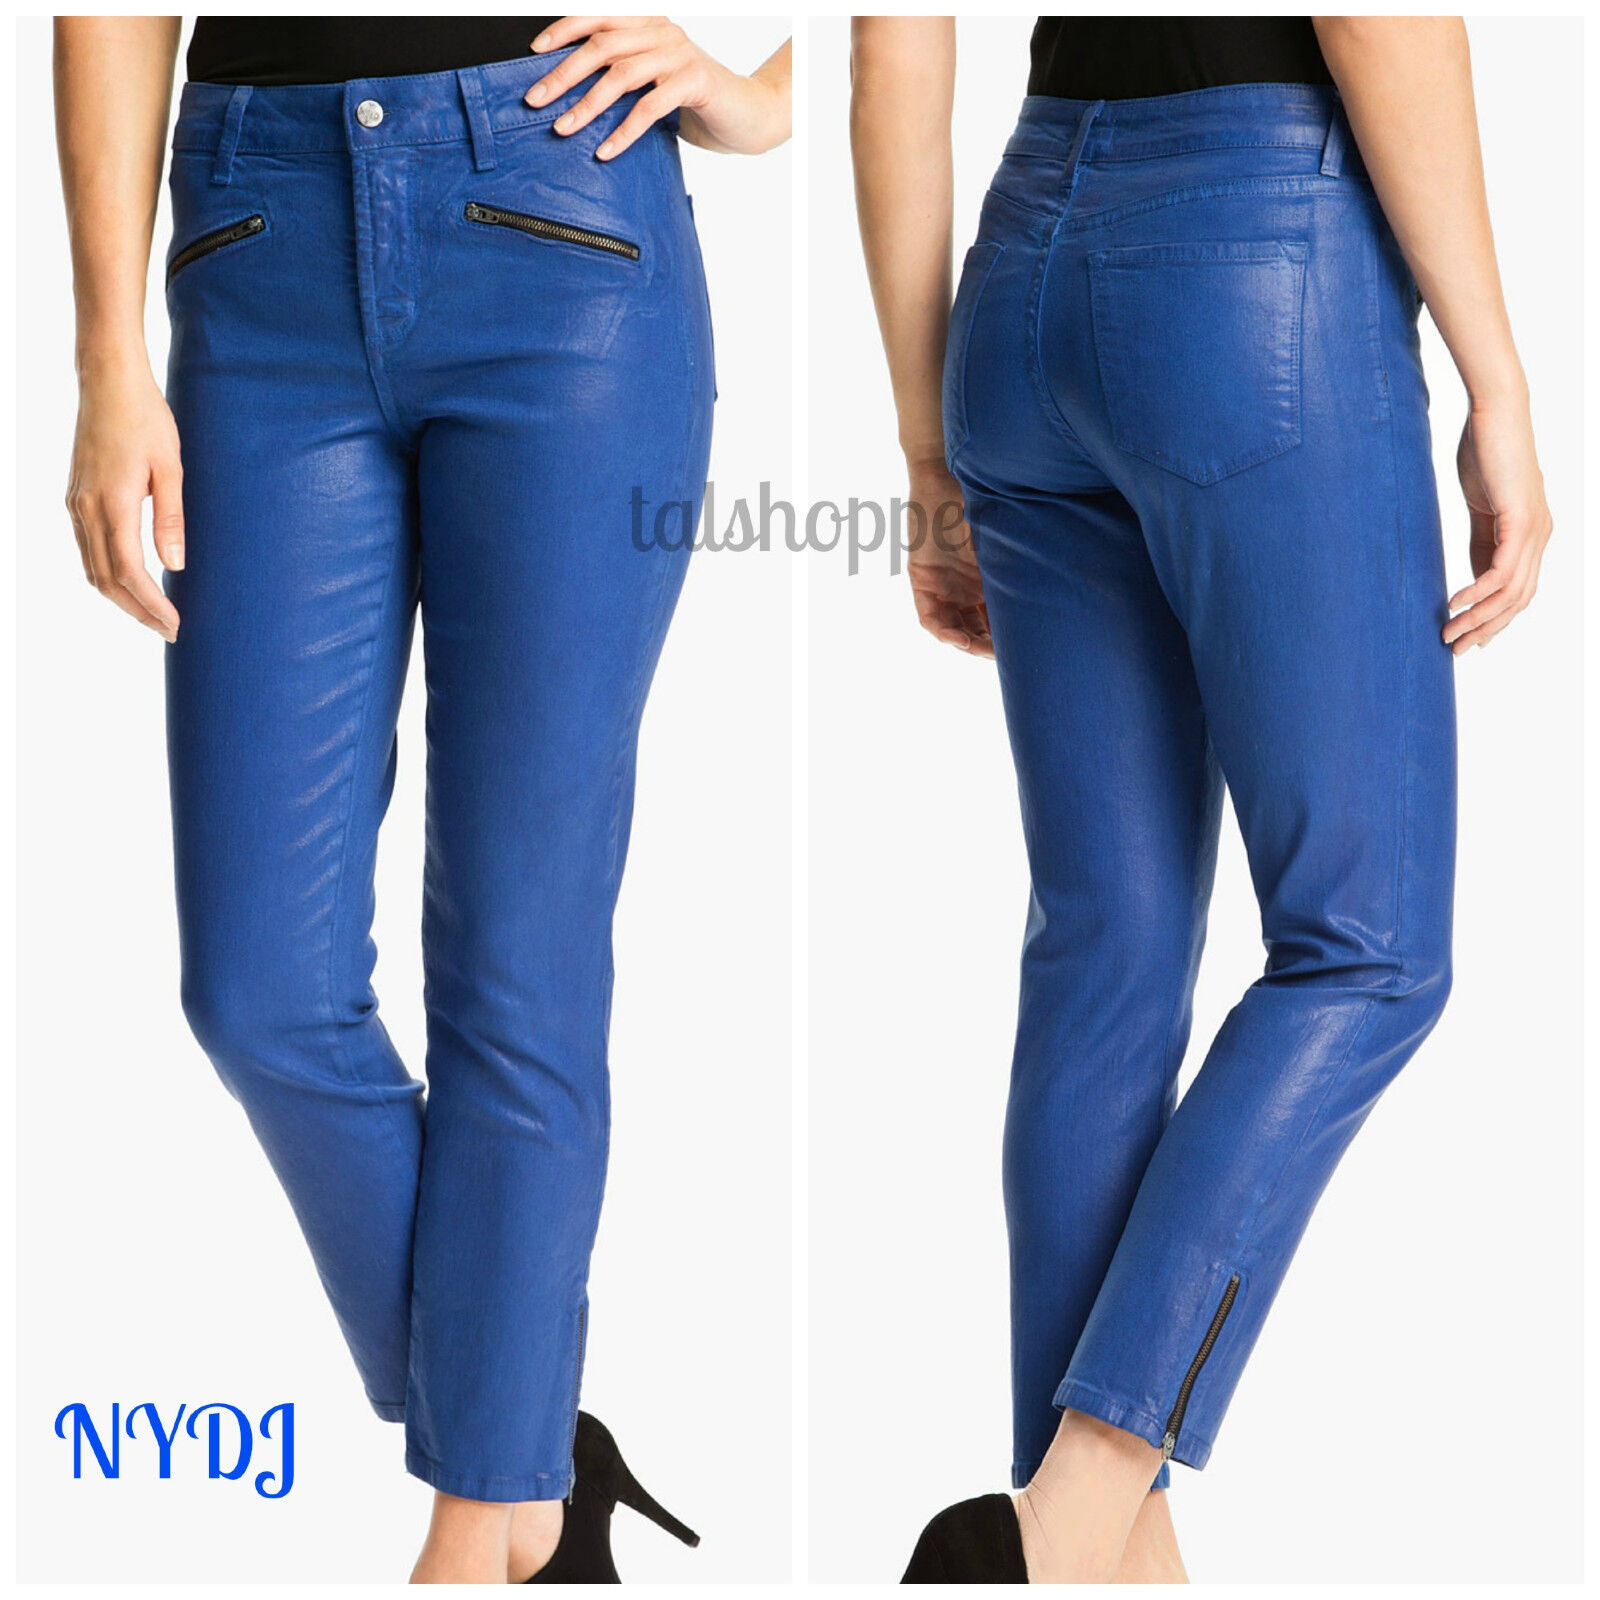 NYDJ NOT YOUR DAUGHTERS JEANS Angelina Coated Skinny Denim Jeans Leggings NWT 2